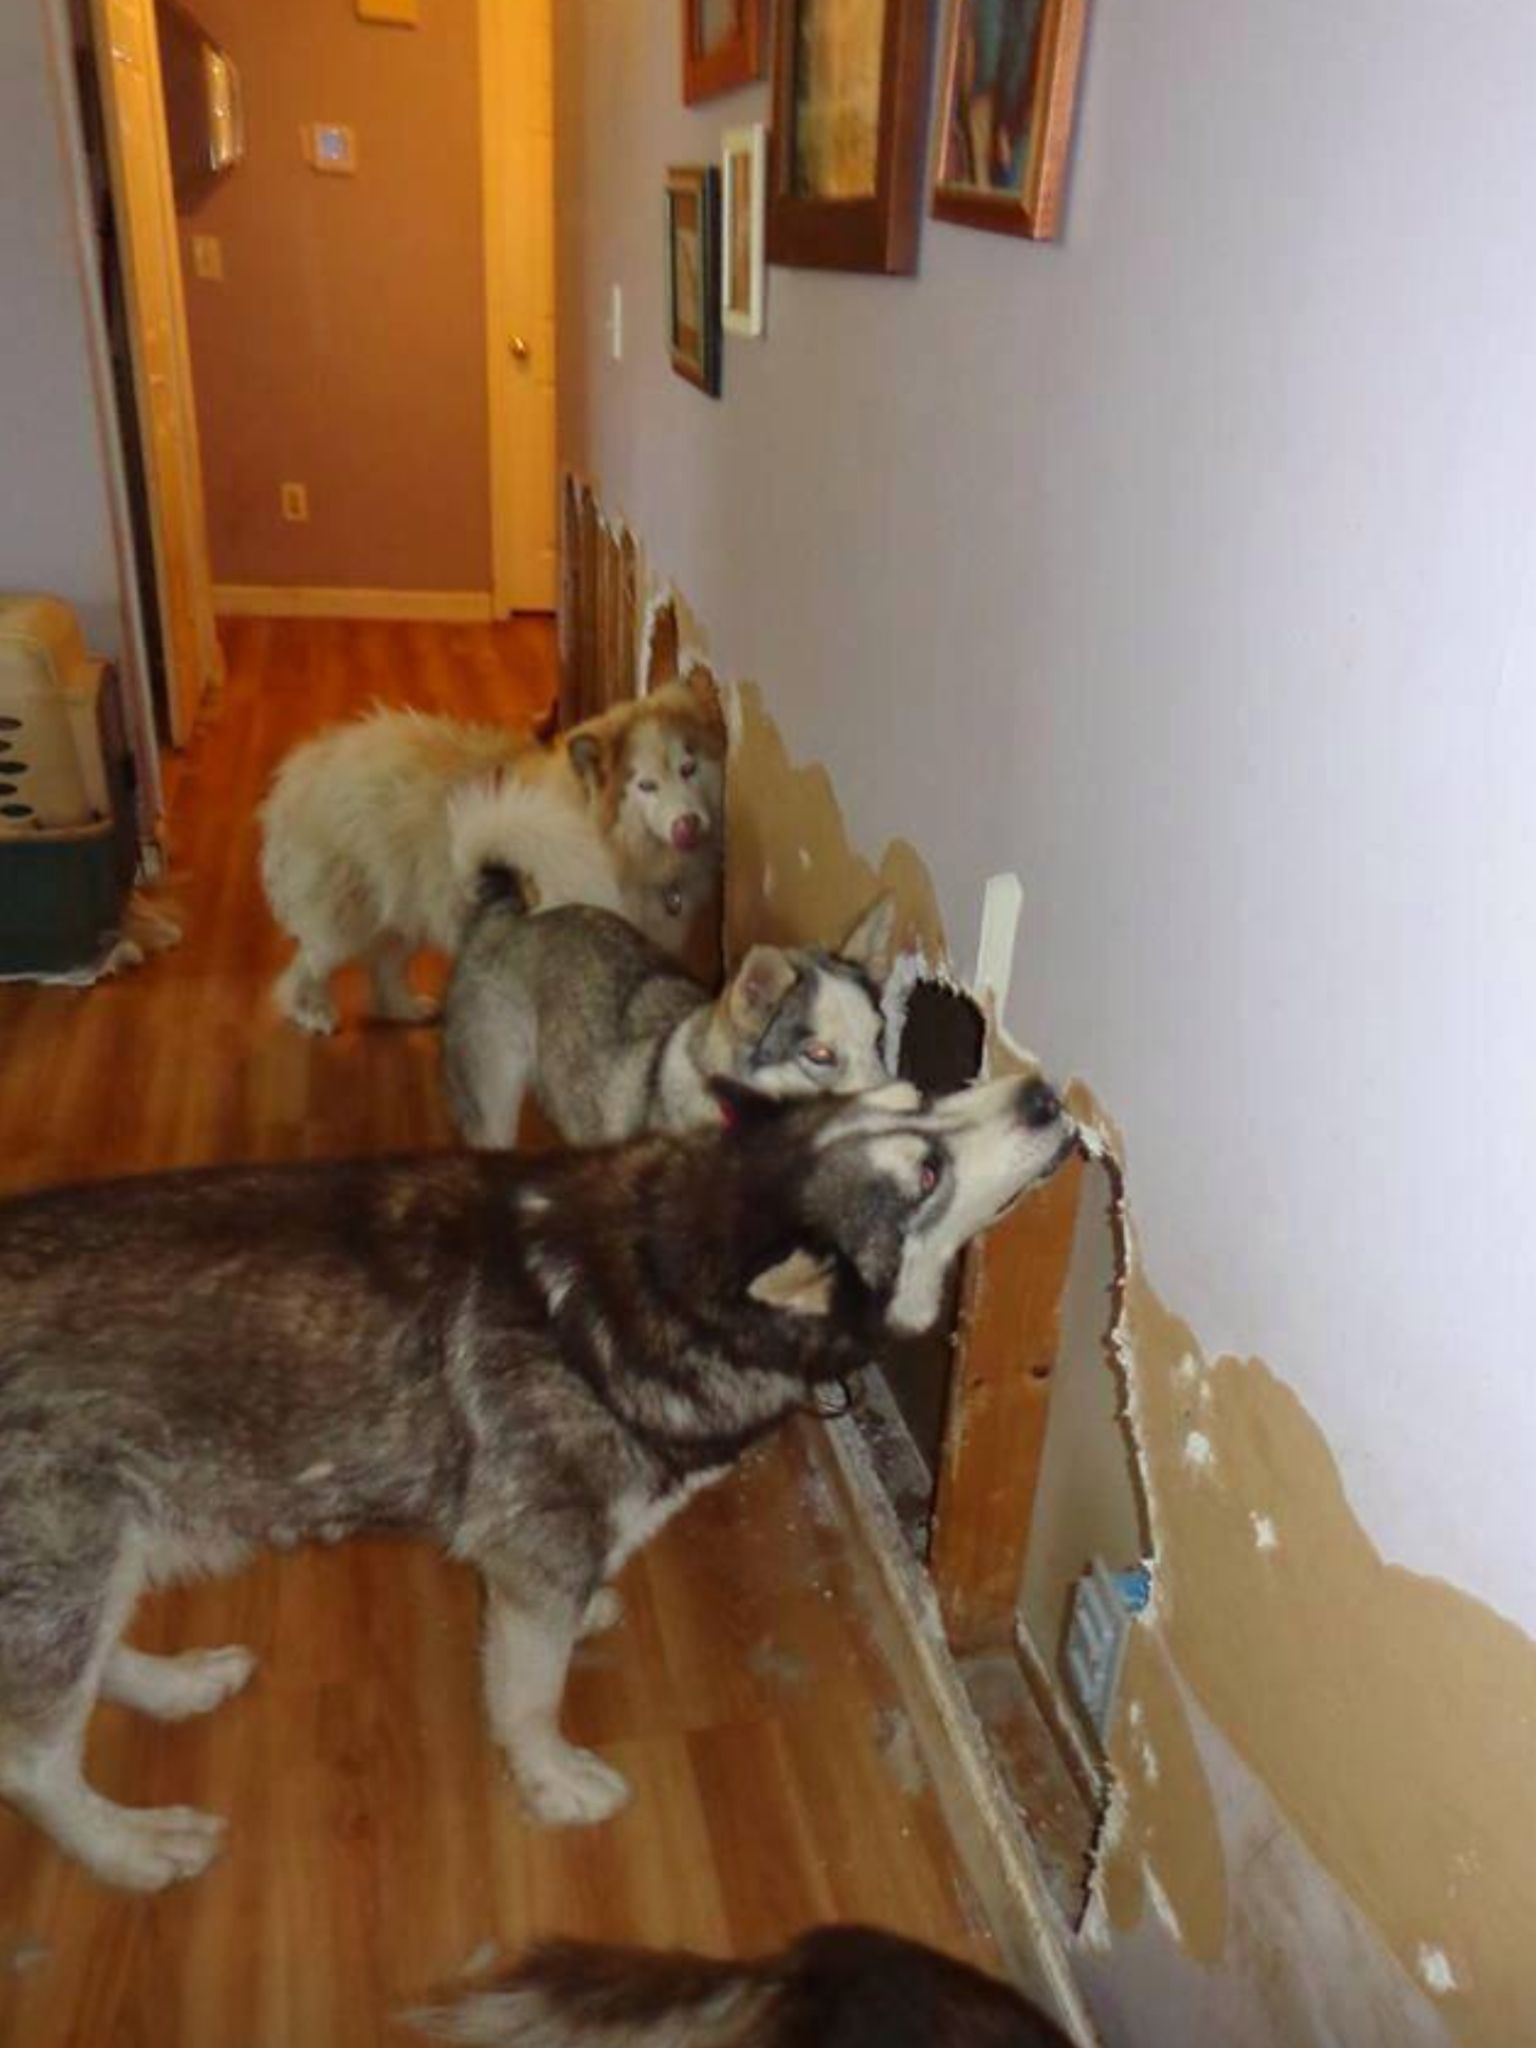 need demolition done  call the  u0026quot husky mouth contractors u0026quot   photo from southern siberian rescue